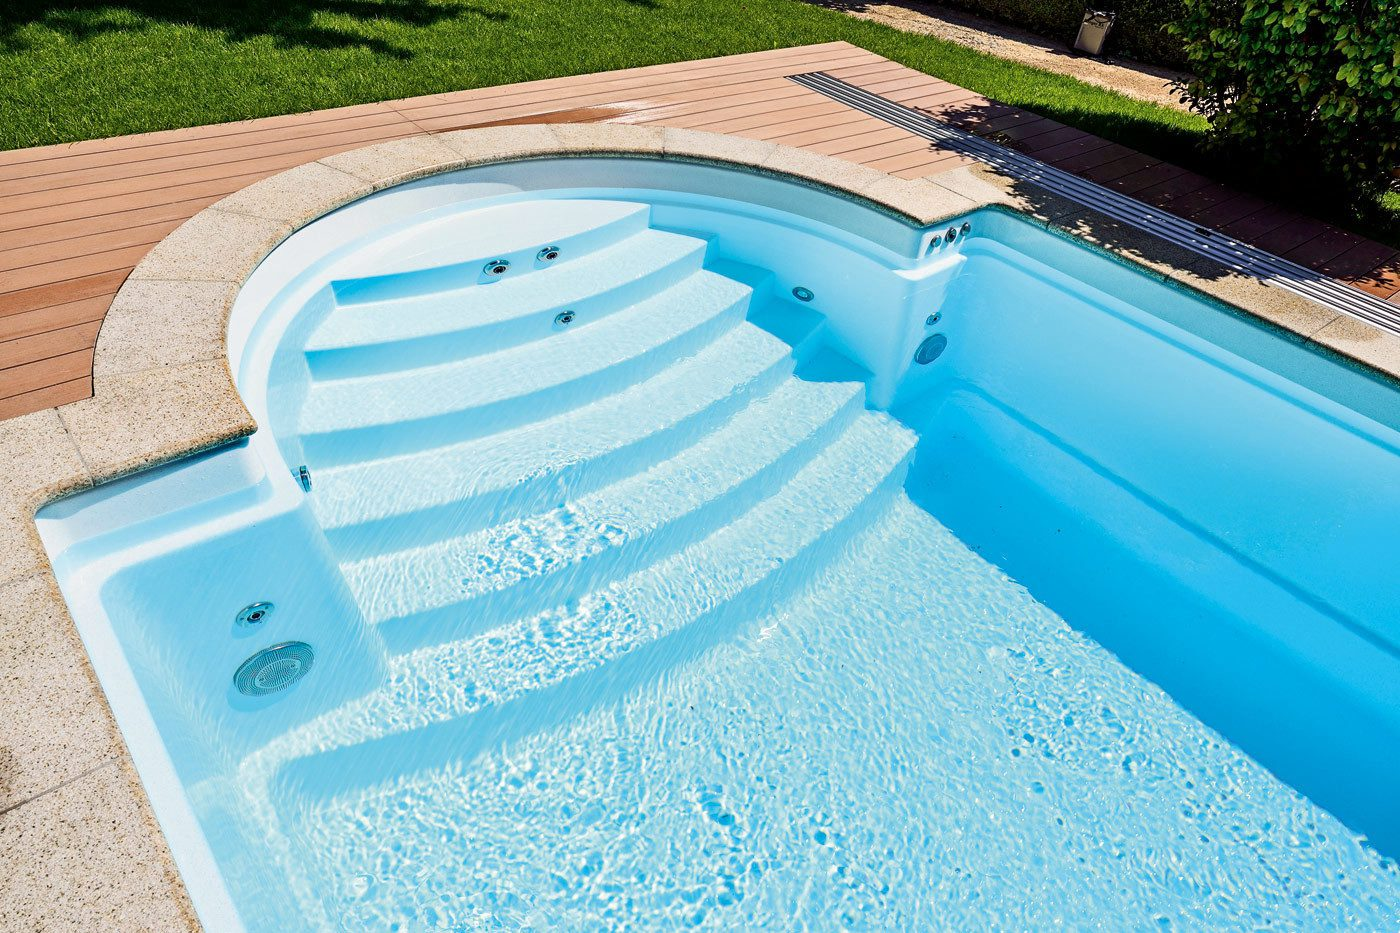 papa 8.5M ceramic fibreglass core pool